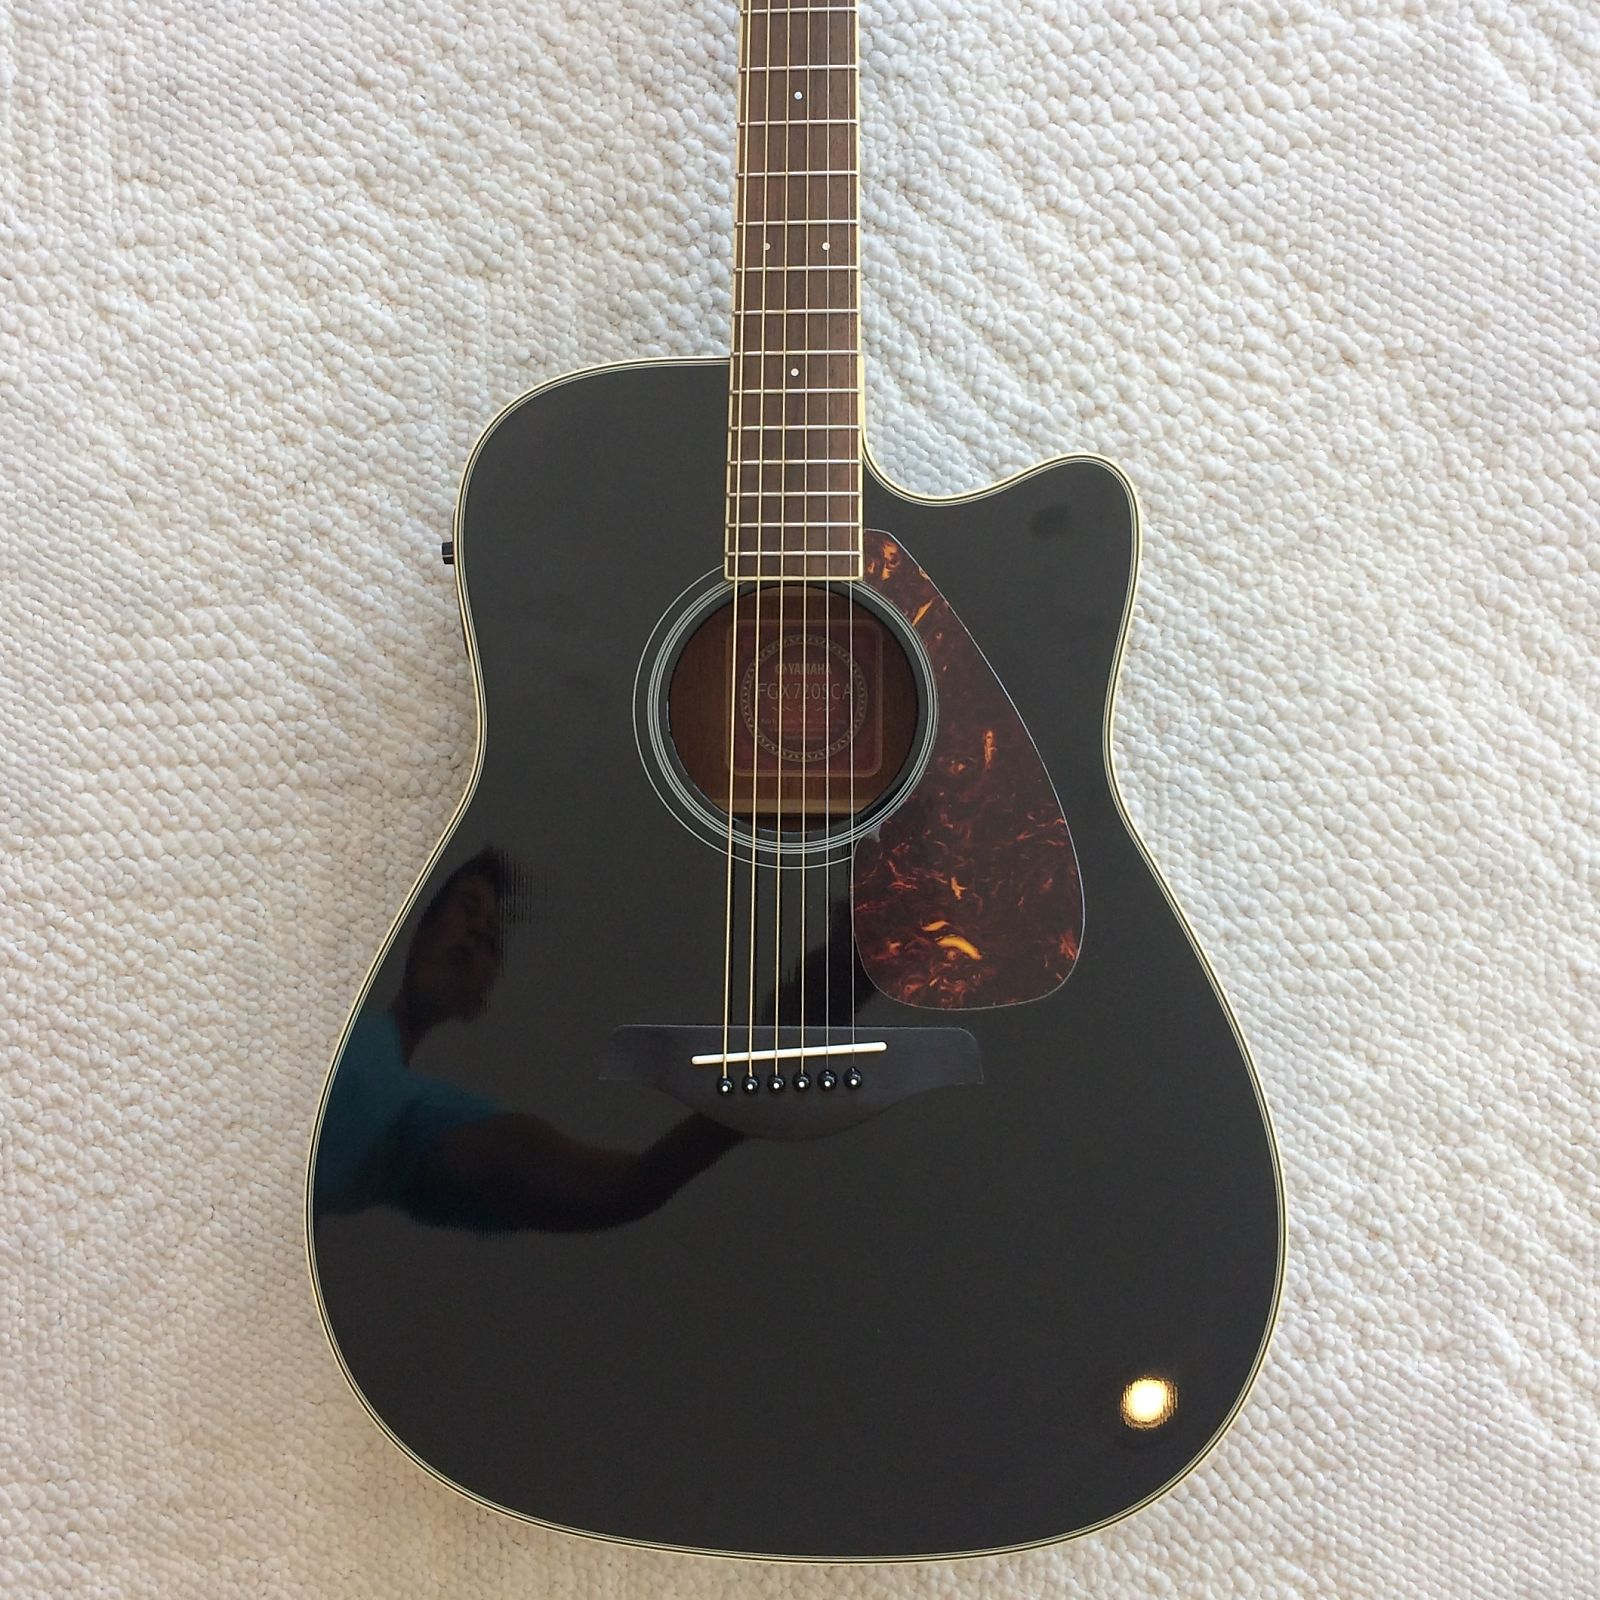 Yamaha fgx720sca folk acoustic electric guitar black reverb for Yamaha fgx720sca price